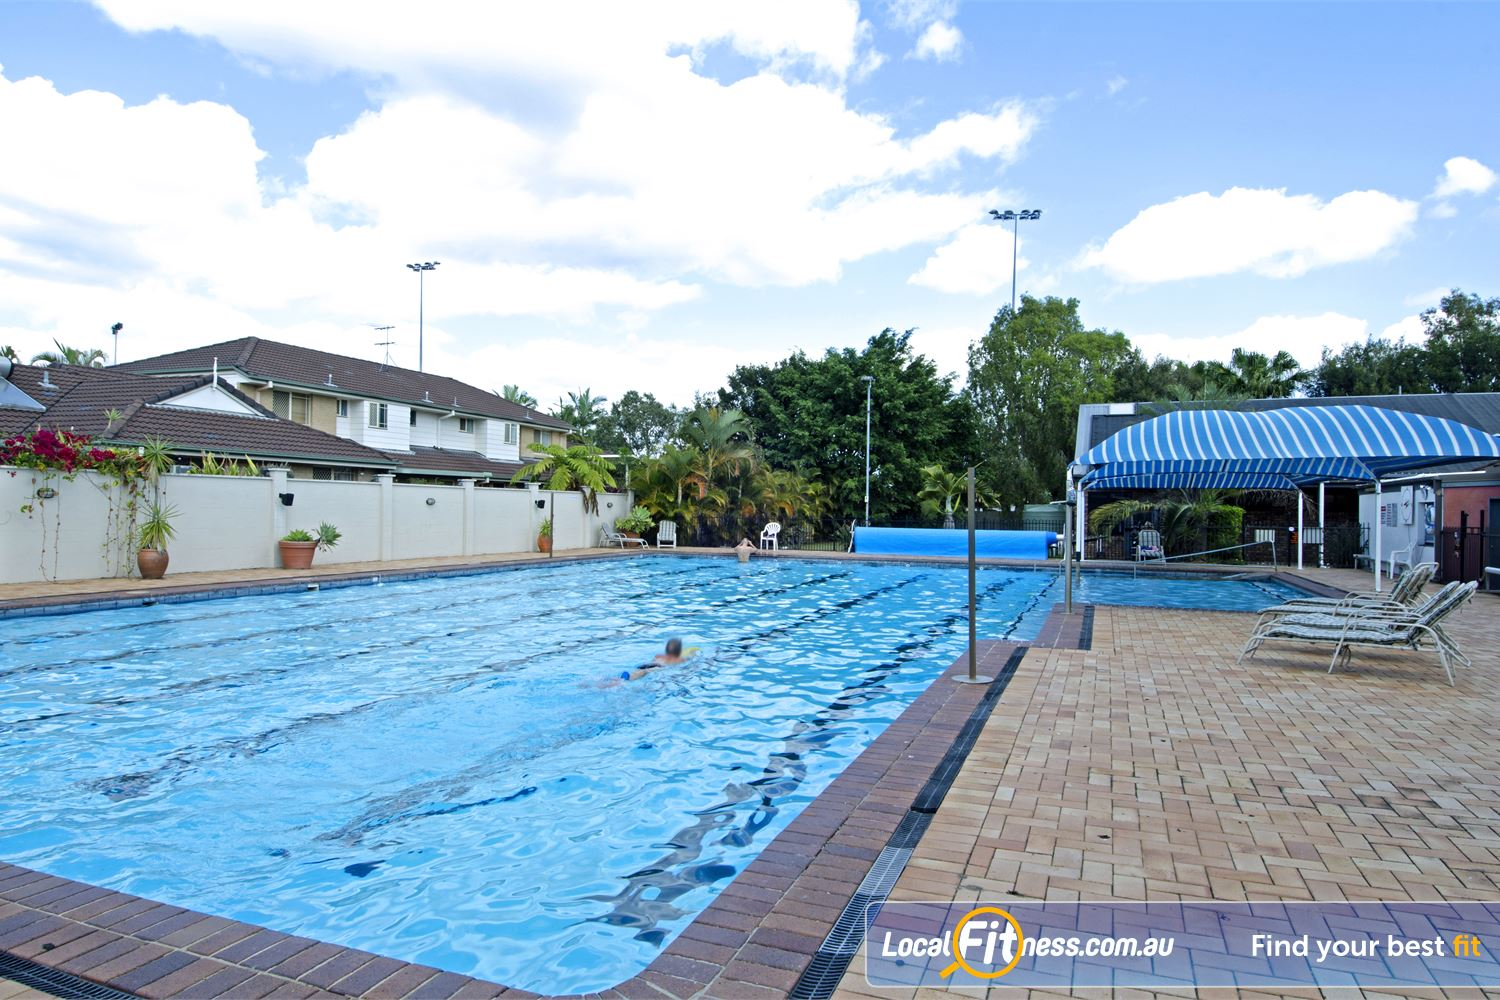 Goodlife Health Clubs Carseldine Outdoor Carseldine swimming pool.